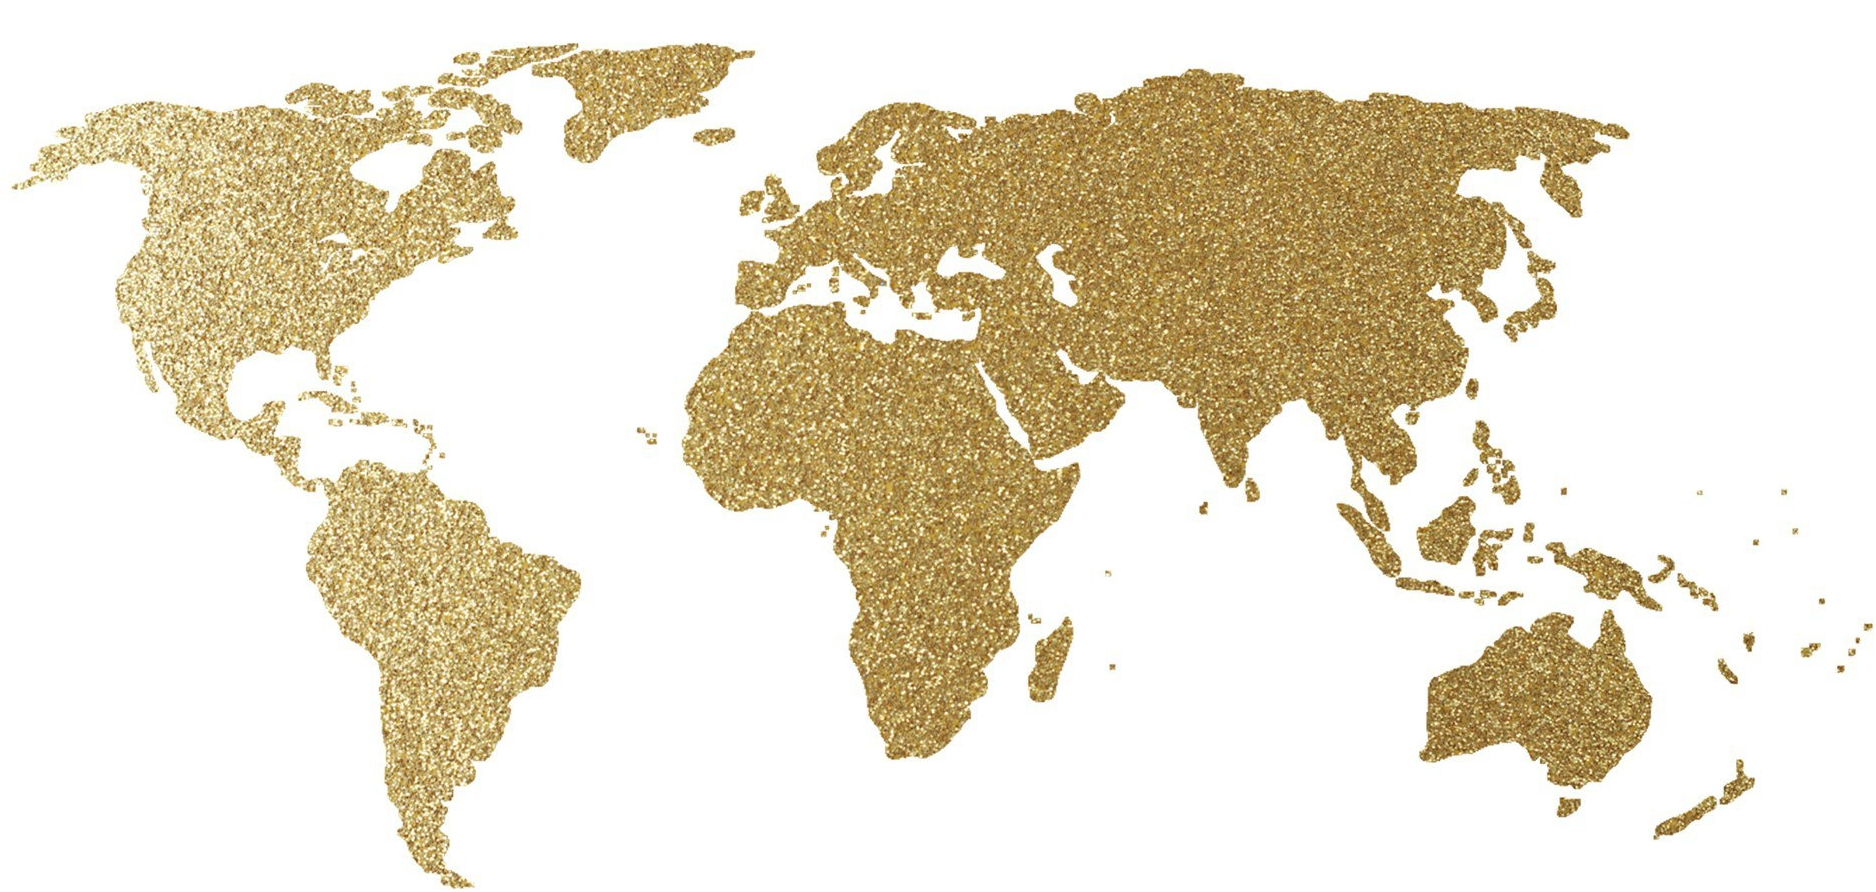 Golden Glitter Worldmap Puricious .jpg